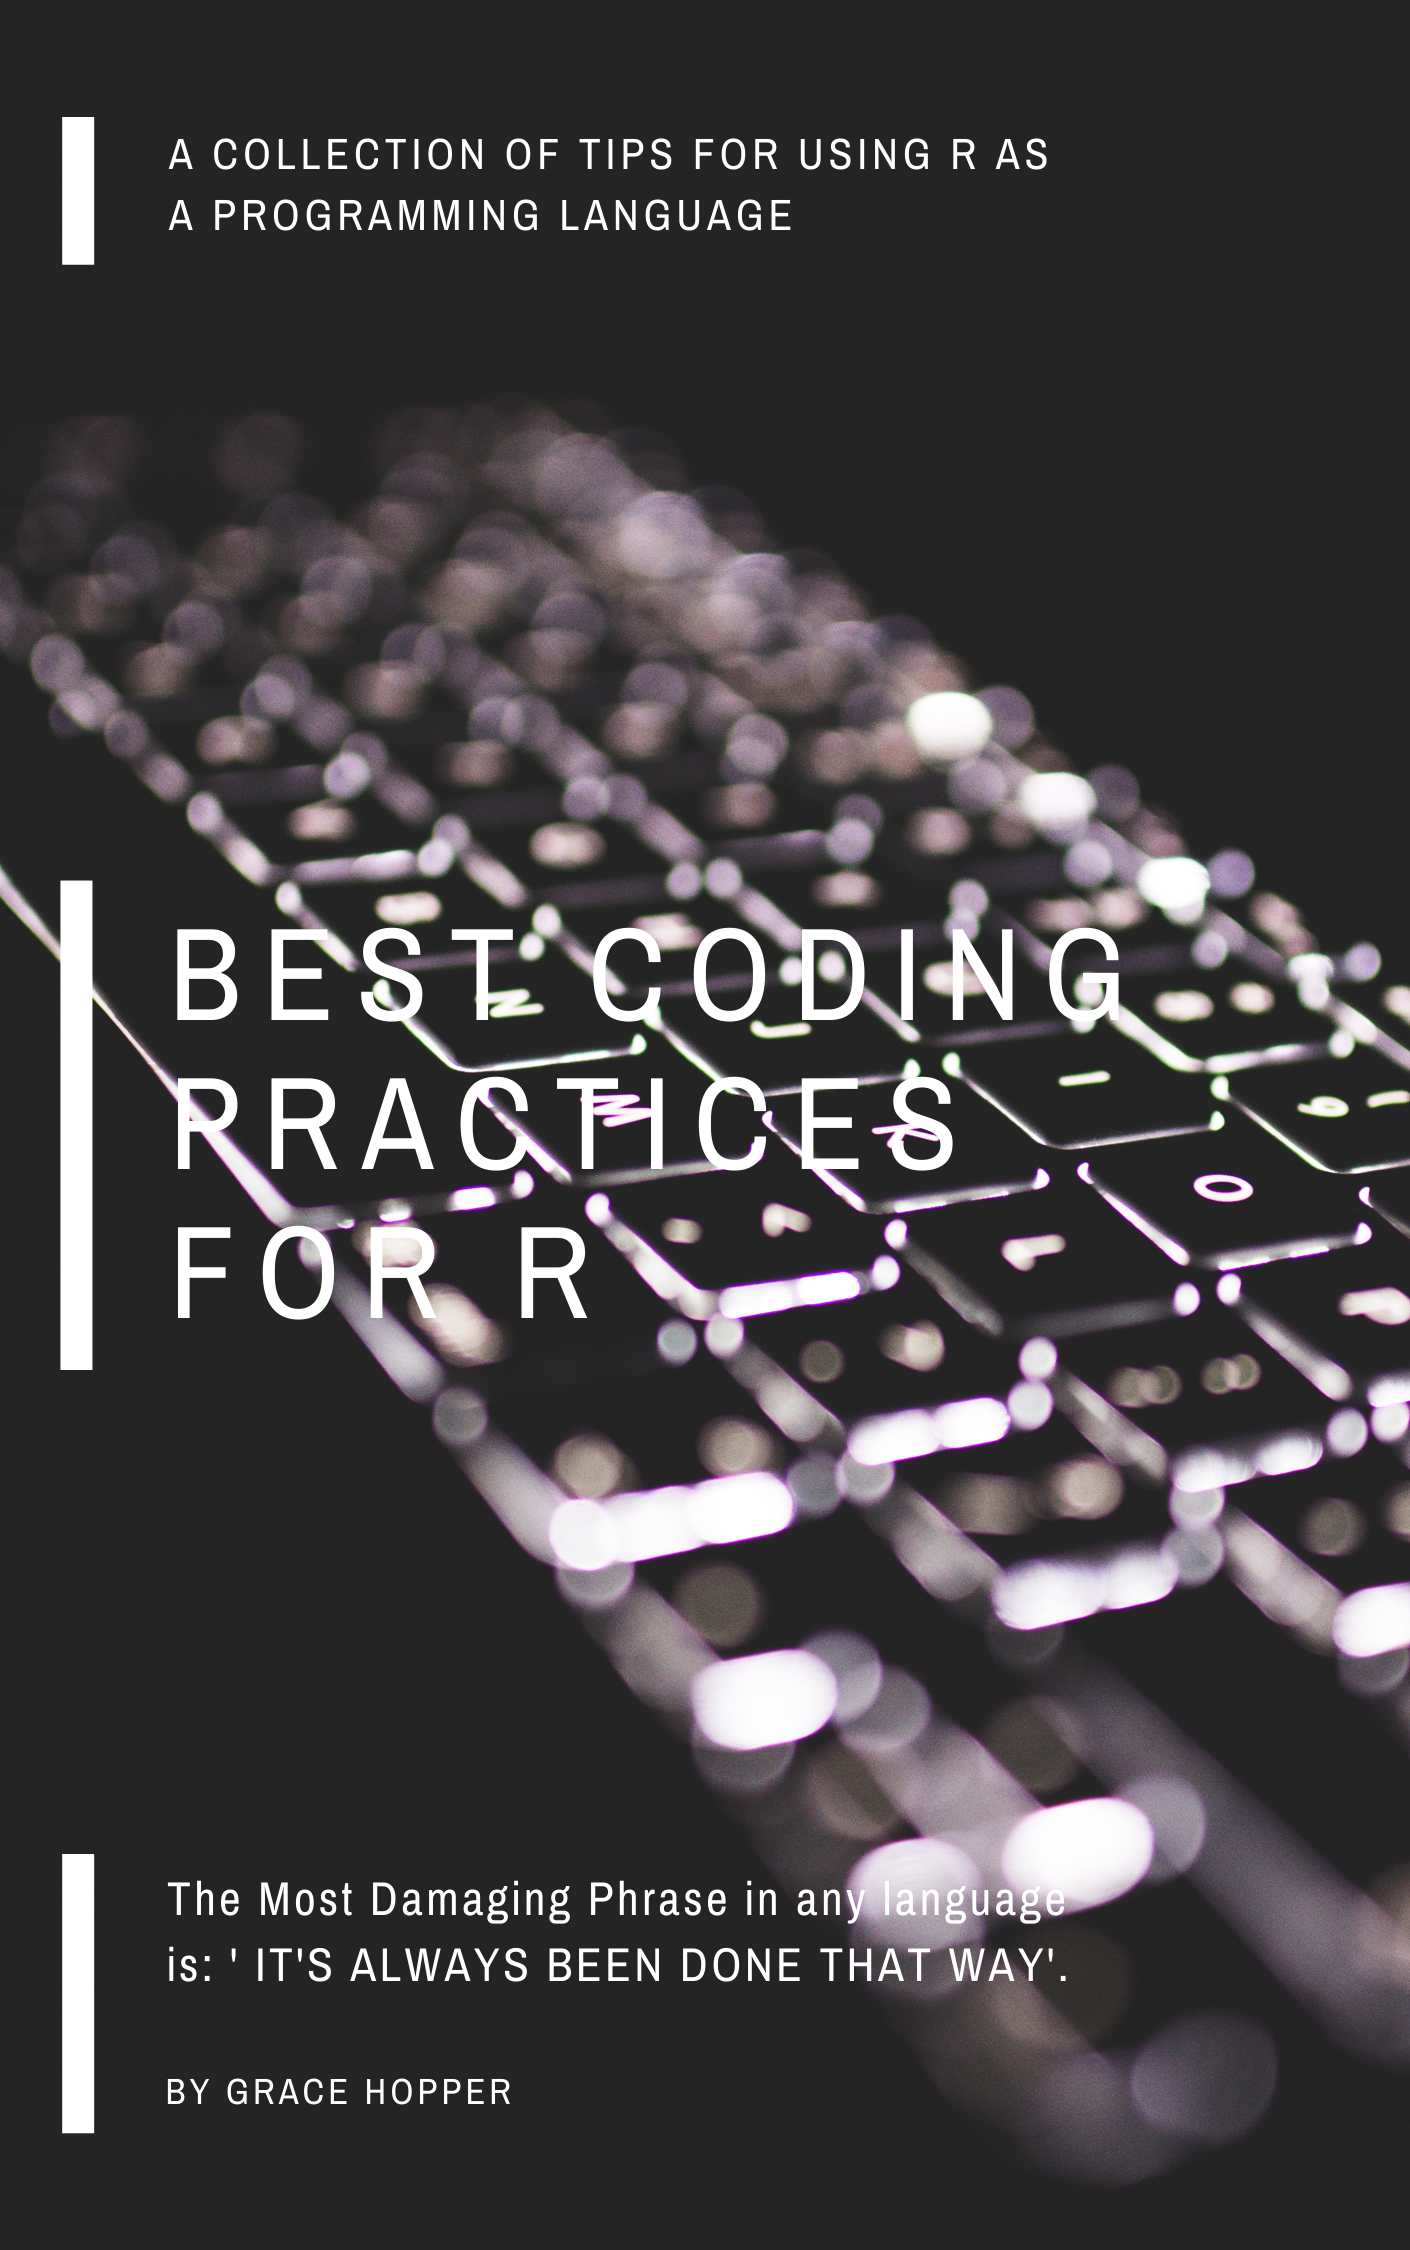 Best Coding Practices for R